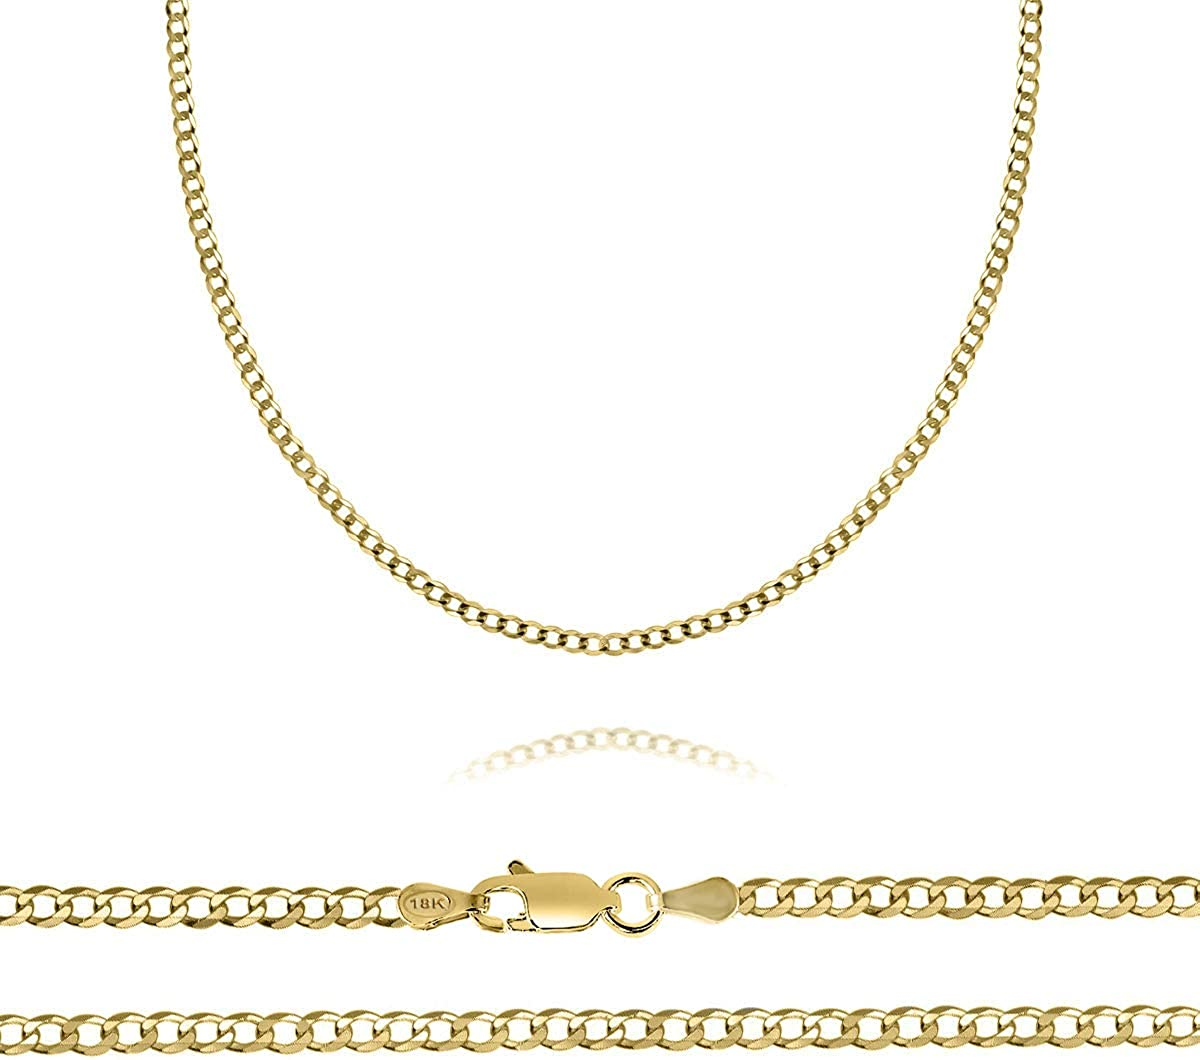 Orostar 2MM 18K Gold Chain for Men & Women with Strong Curb Link   Fine Curb Chain Necklace from Size 16-30 inches